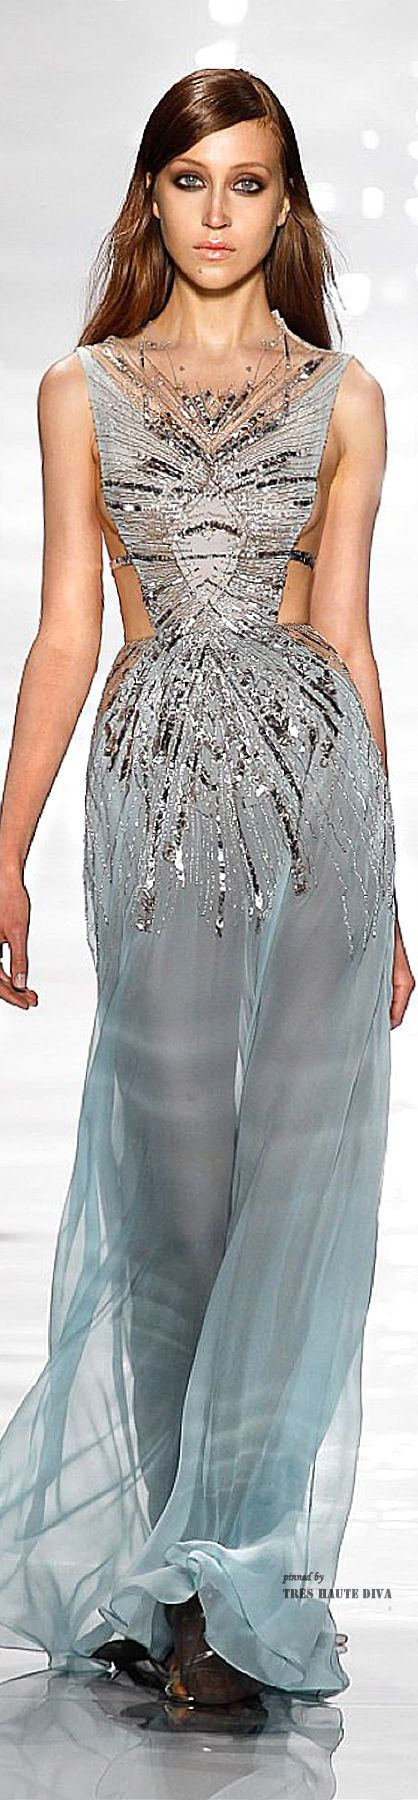 #NYFW Reem Acra Spring 2015 RTW I'd love to see this gown with the legs and waist covered,  instead of exposed..make it more vintage...otherwise it,s exquisite